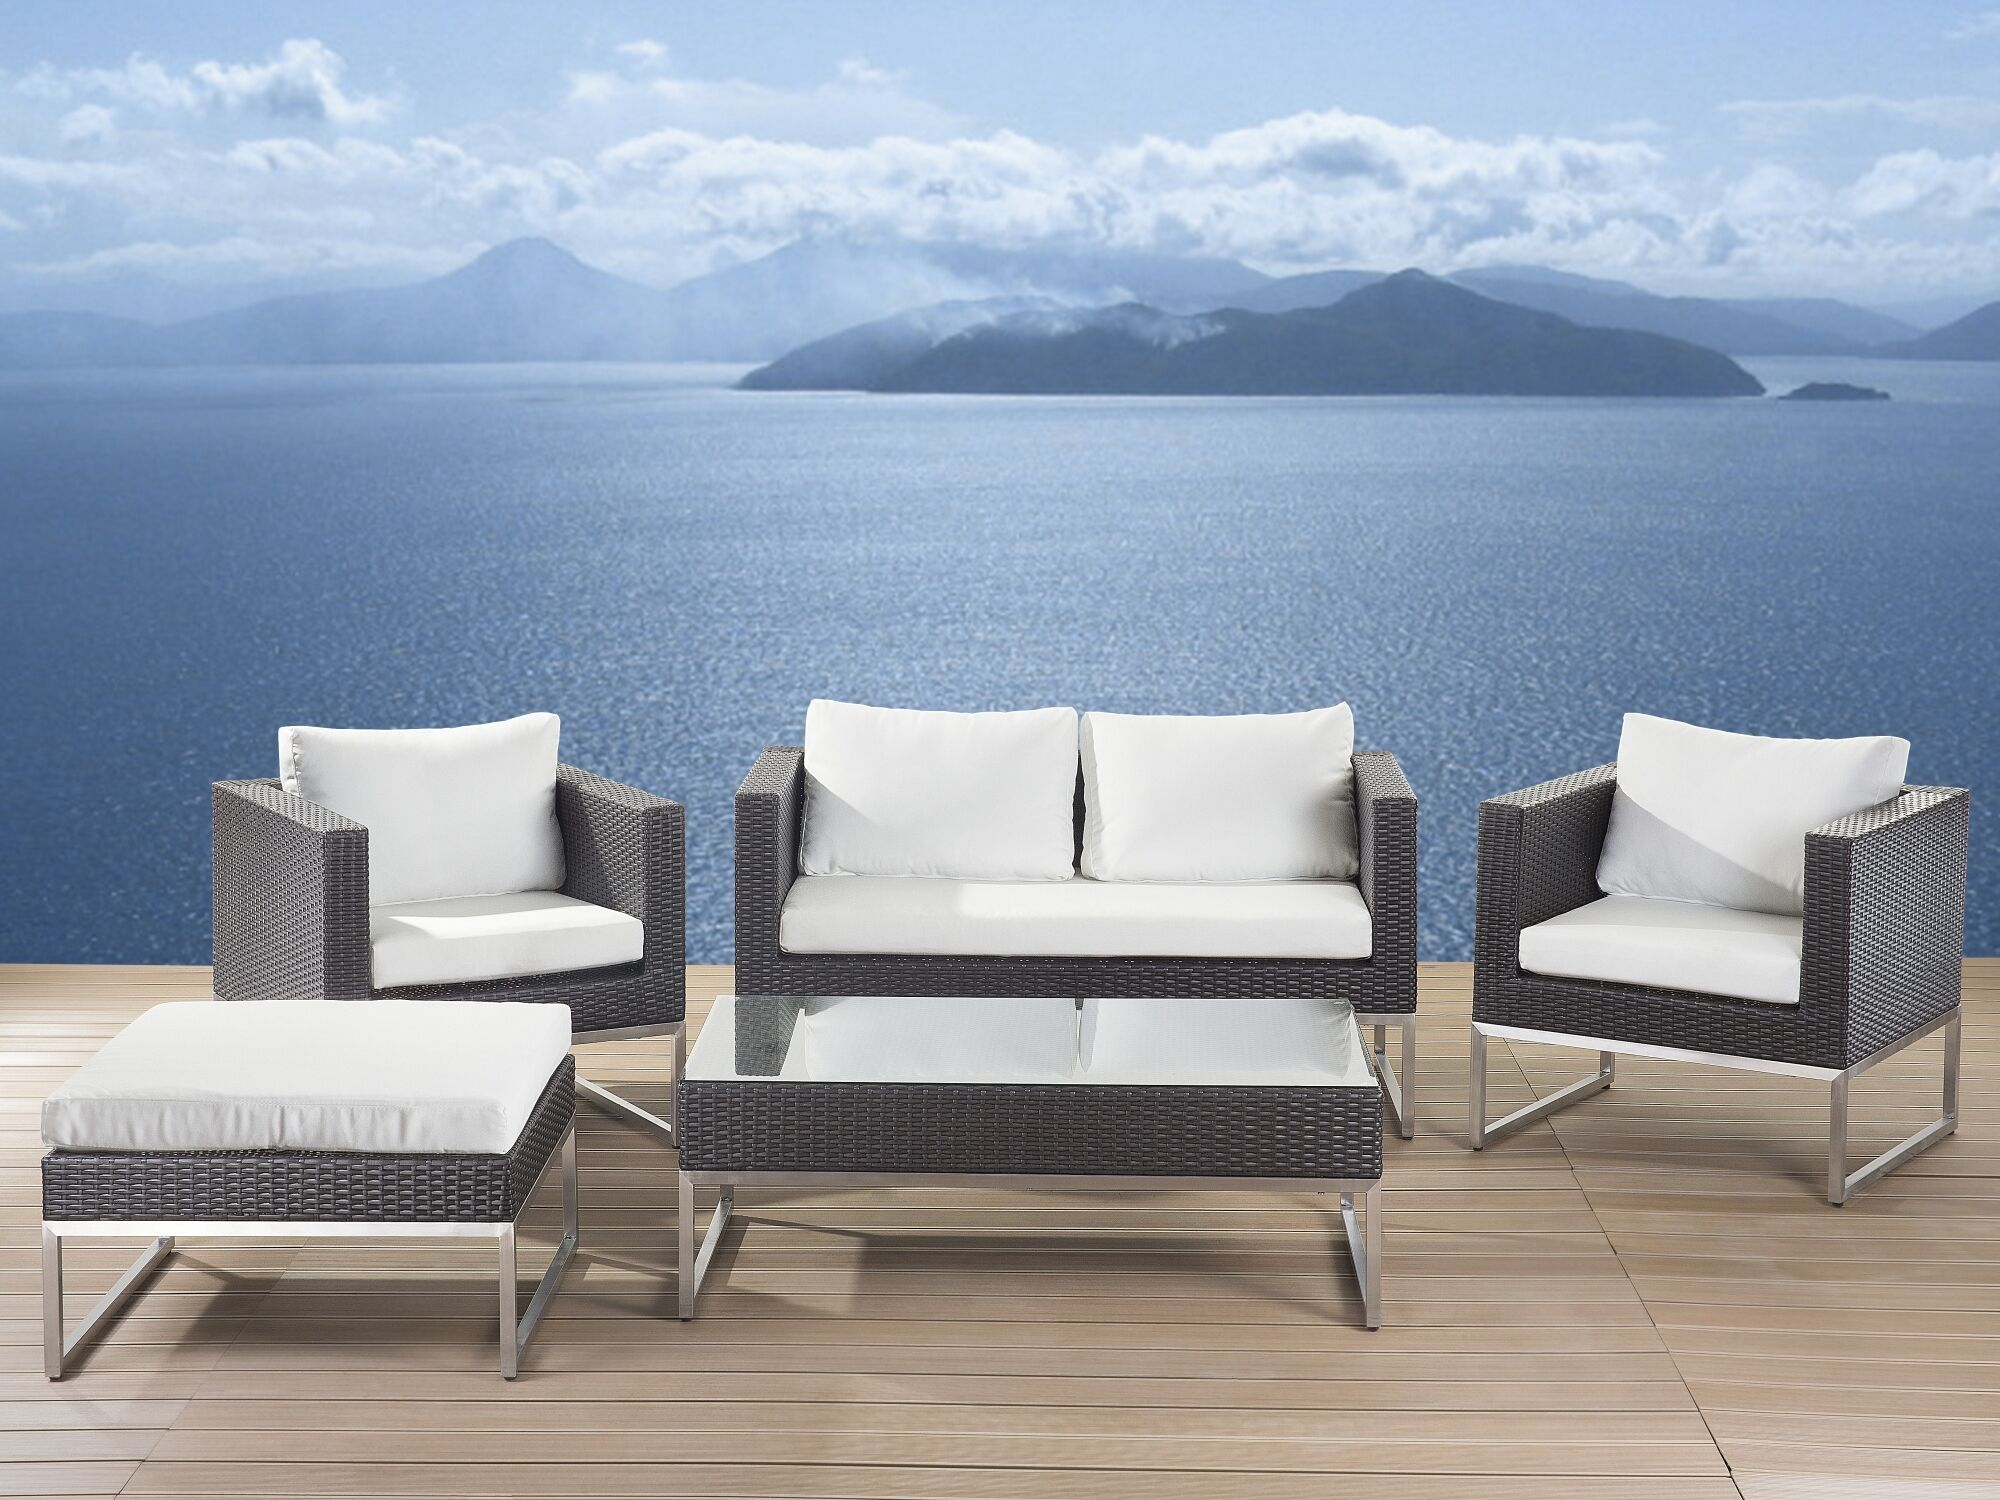 5 Piece Rattan Sofa Set with Cushions